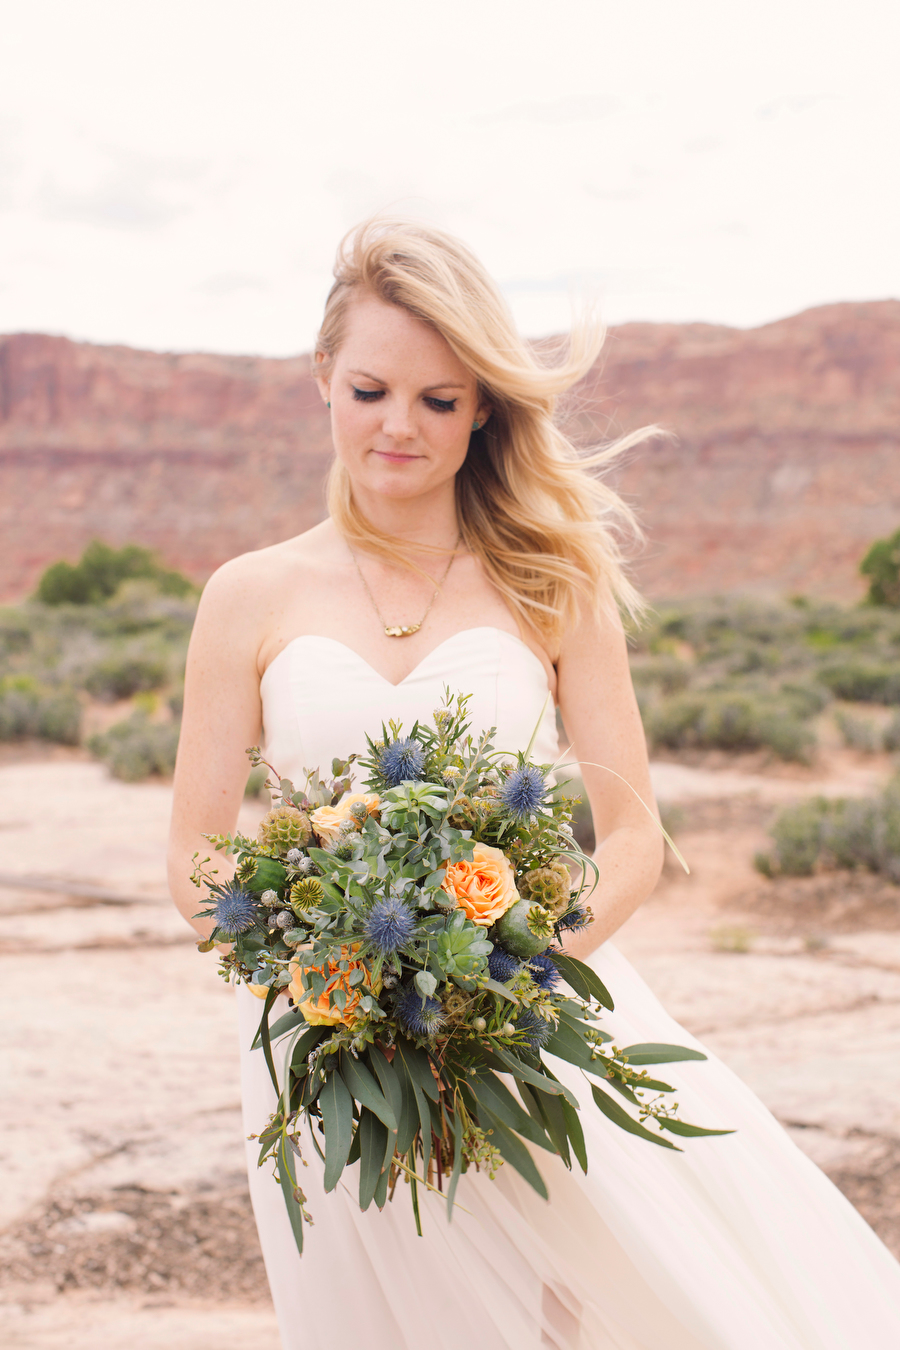 MARIACORONAPHOTOGRAPHY_MOAB_WEDDING_058.JPG